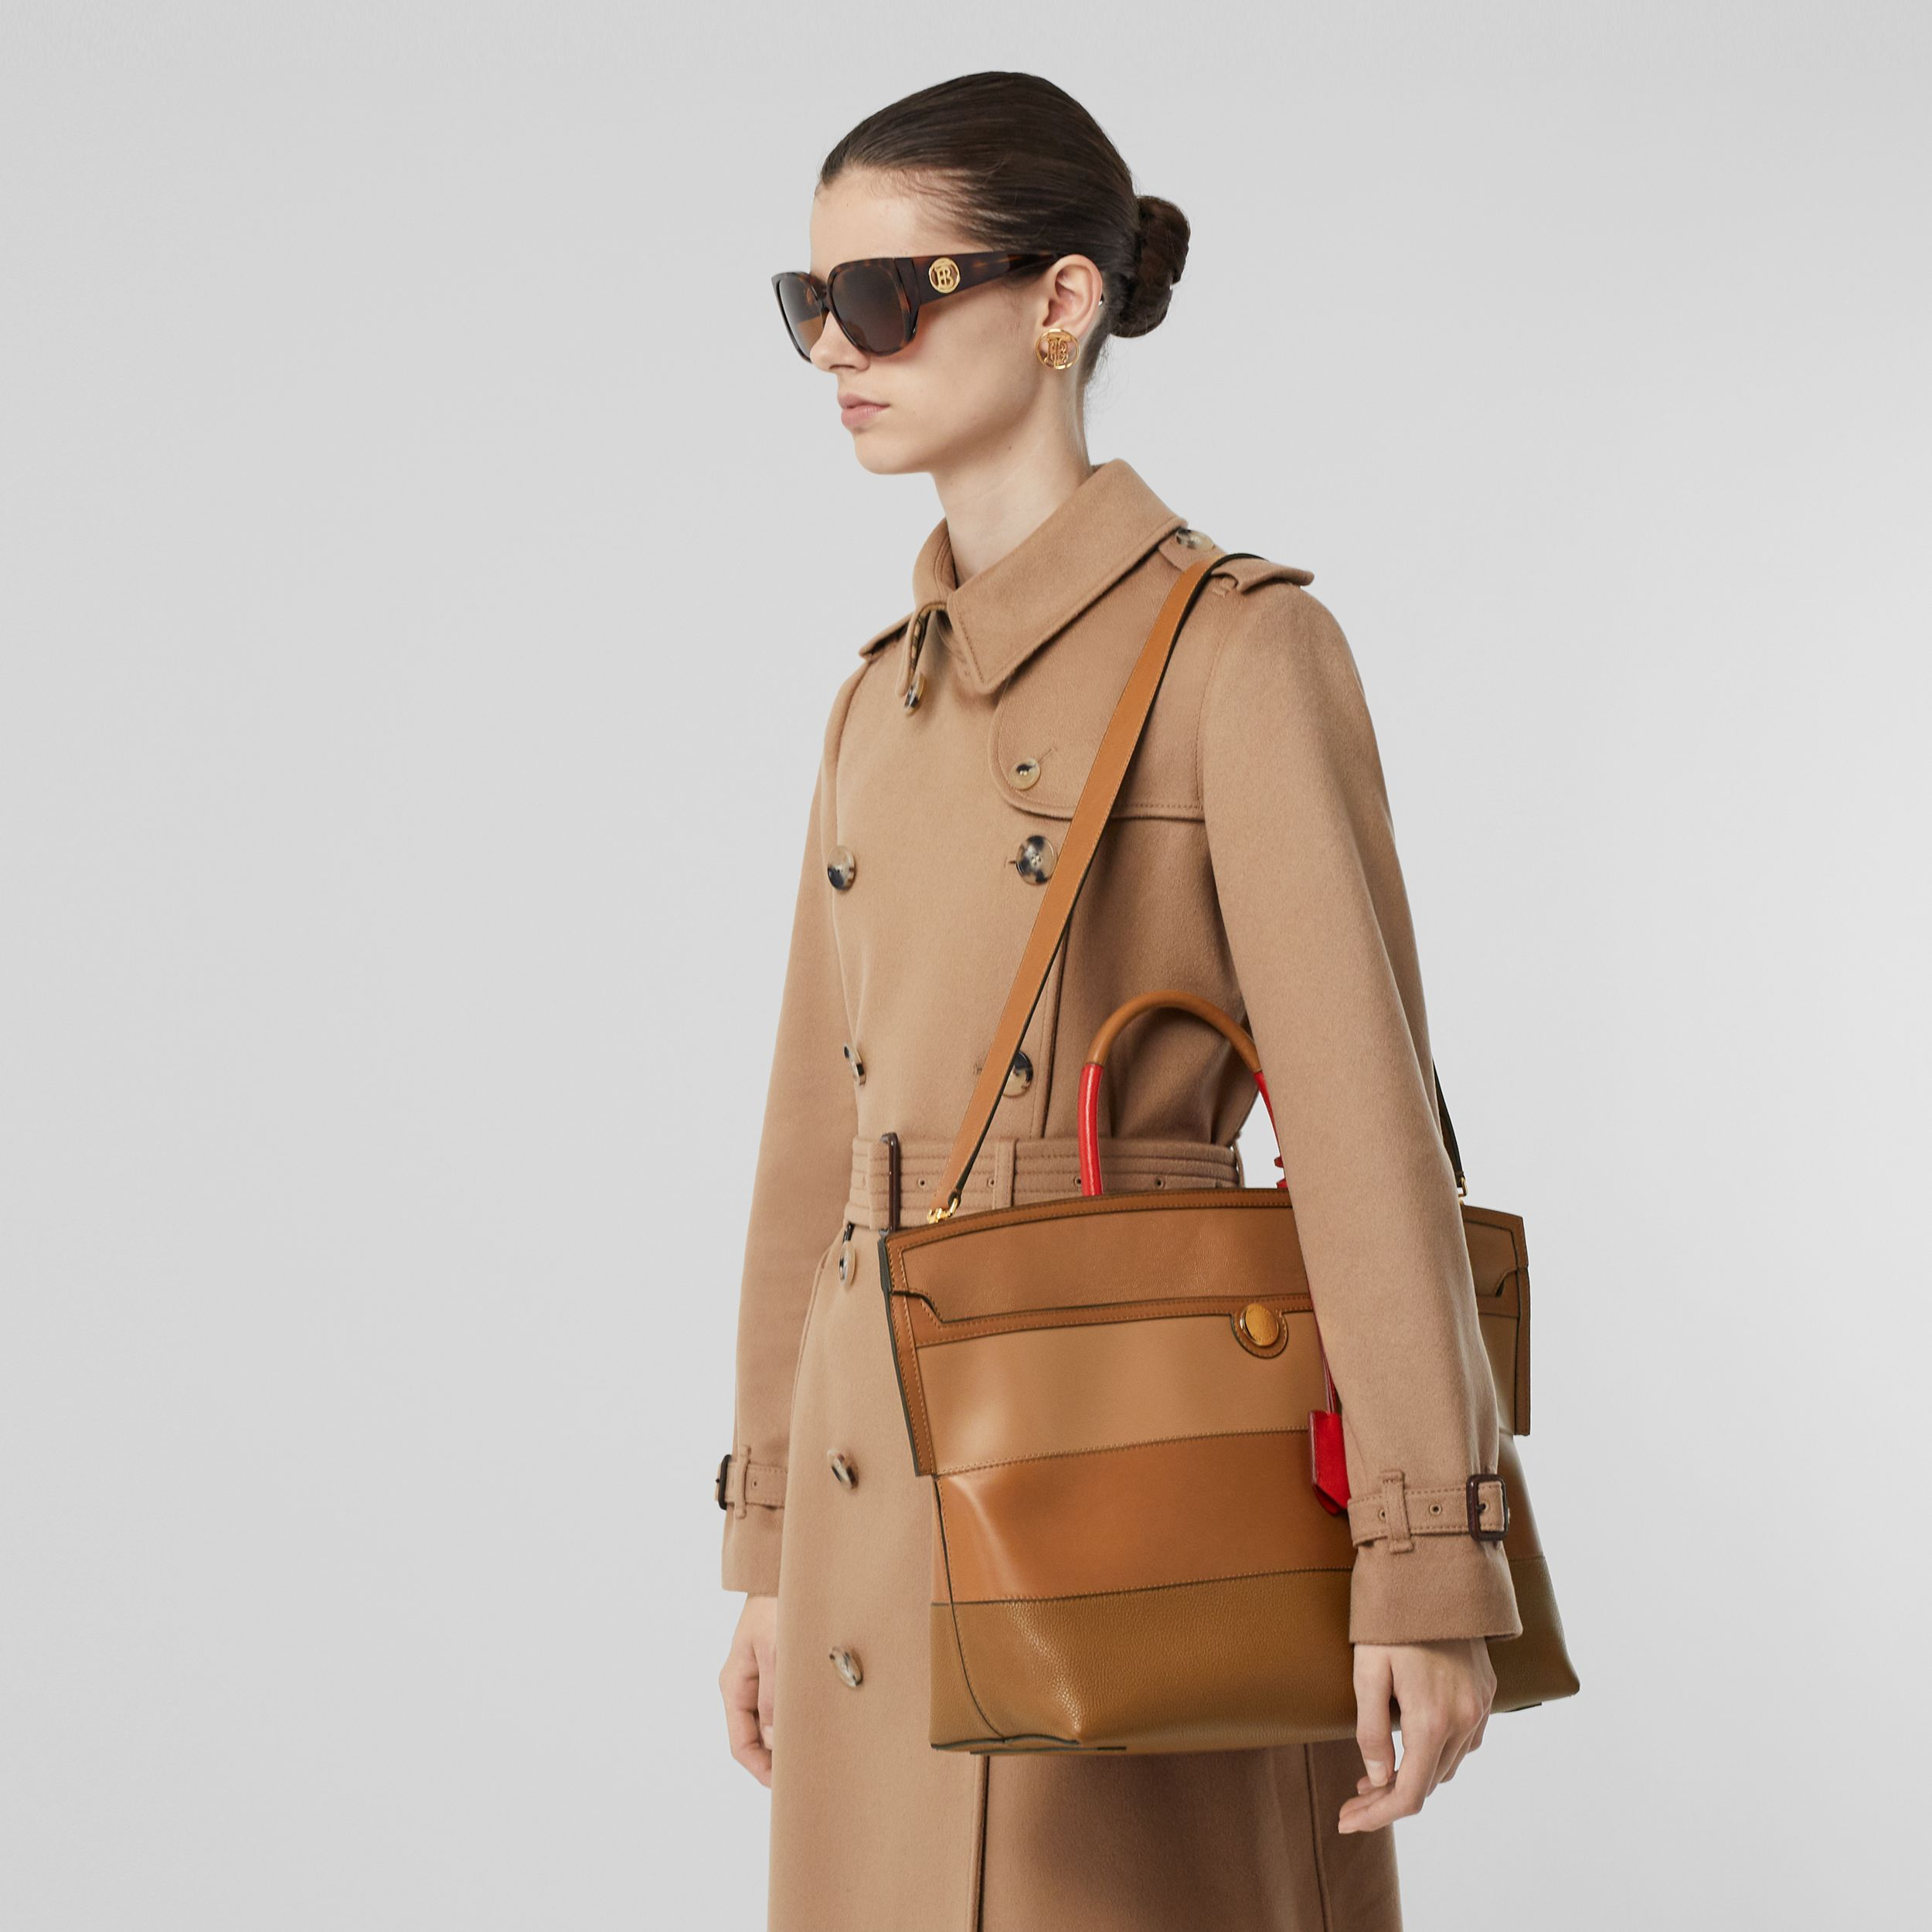 Panelled Leather Society Top Handle Bag in Warm Camel - Women | Burberry - 3